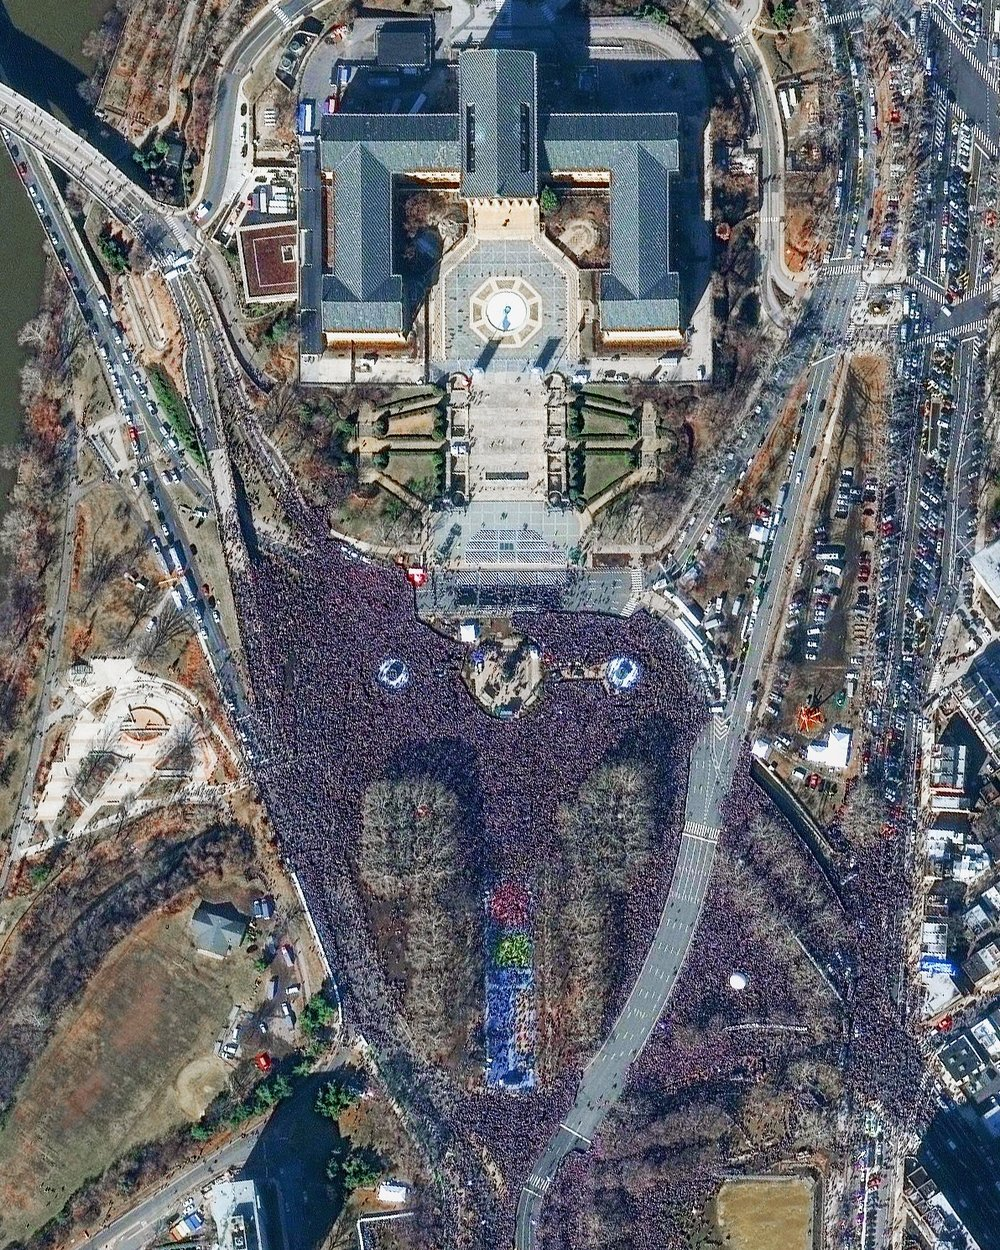 Millions of fans flooded the streets of Philadelphia, Pennsylvania yesterday to attend the Super Bowl parade for the Eagles' championship victory. Official estimates suggest more than two million fans were in attendance, including a massive collection of people seen here in front of the Philadelphia Museum of Art.  39.9655697, -75.1809661